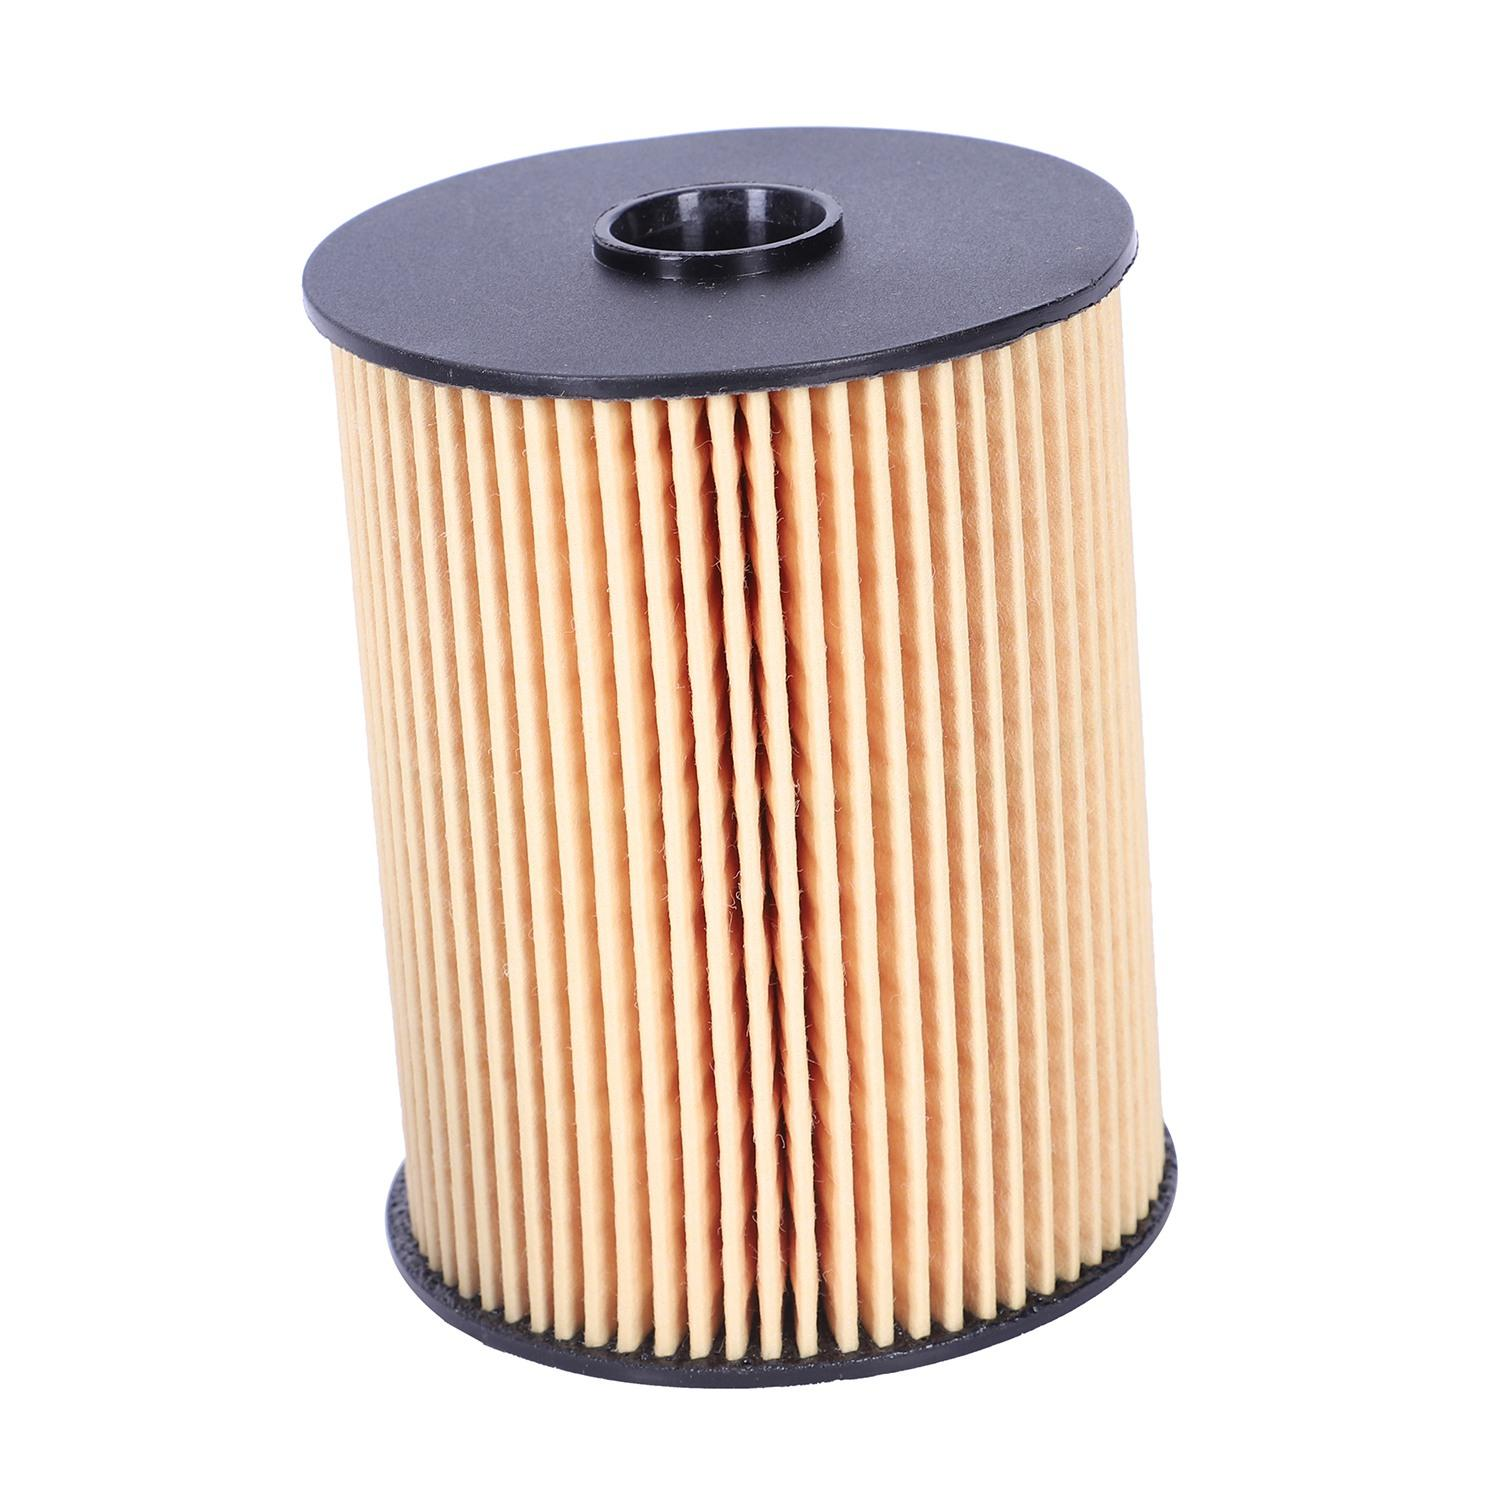 hight resolution of for bmw mini r50 r52 r53 one cooper s fuel filter 16146757196 a898